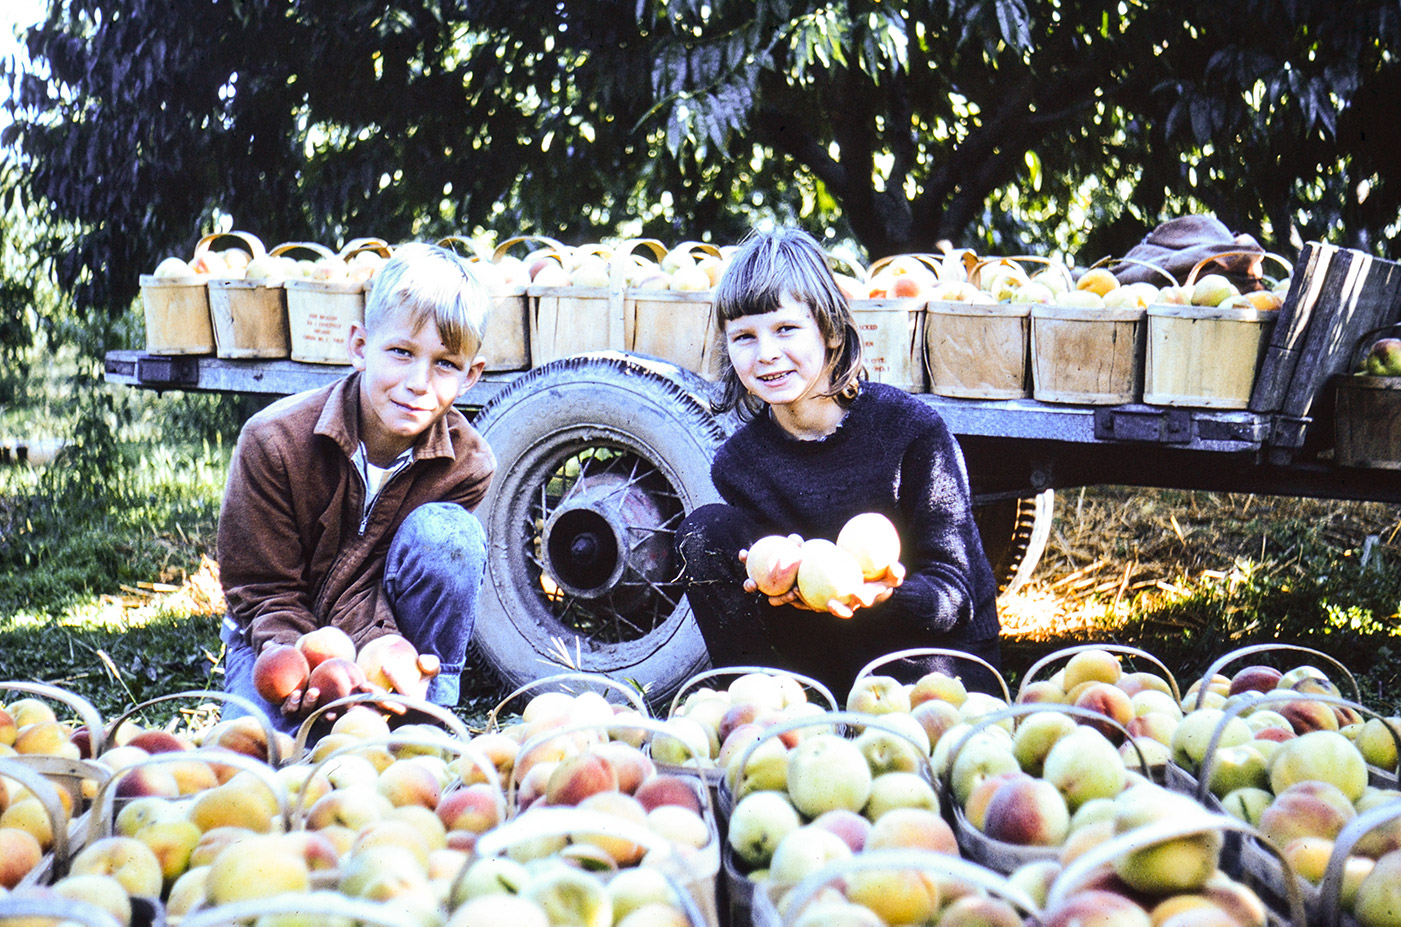 Arnie and Barb showing off the harvest